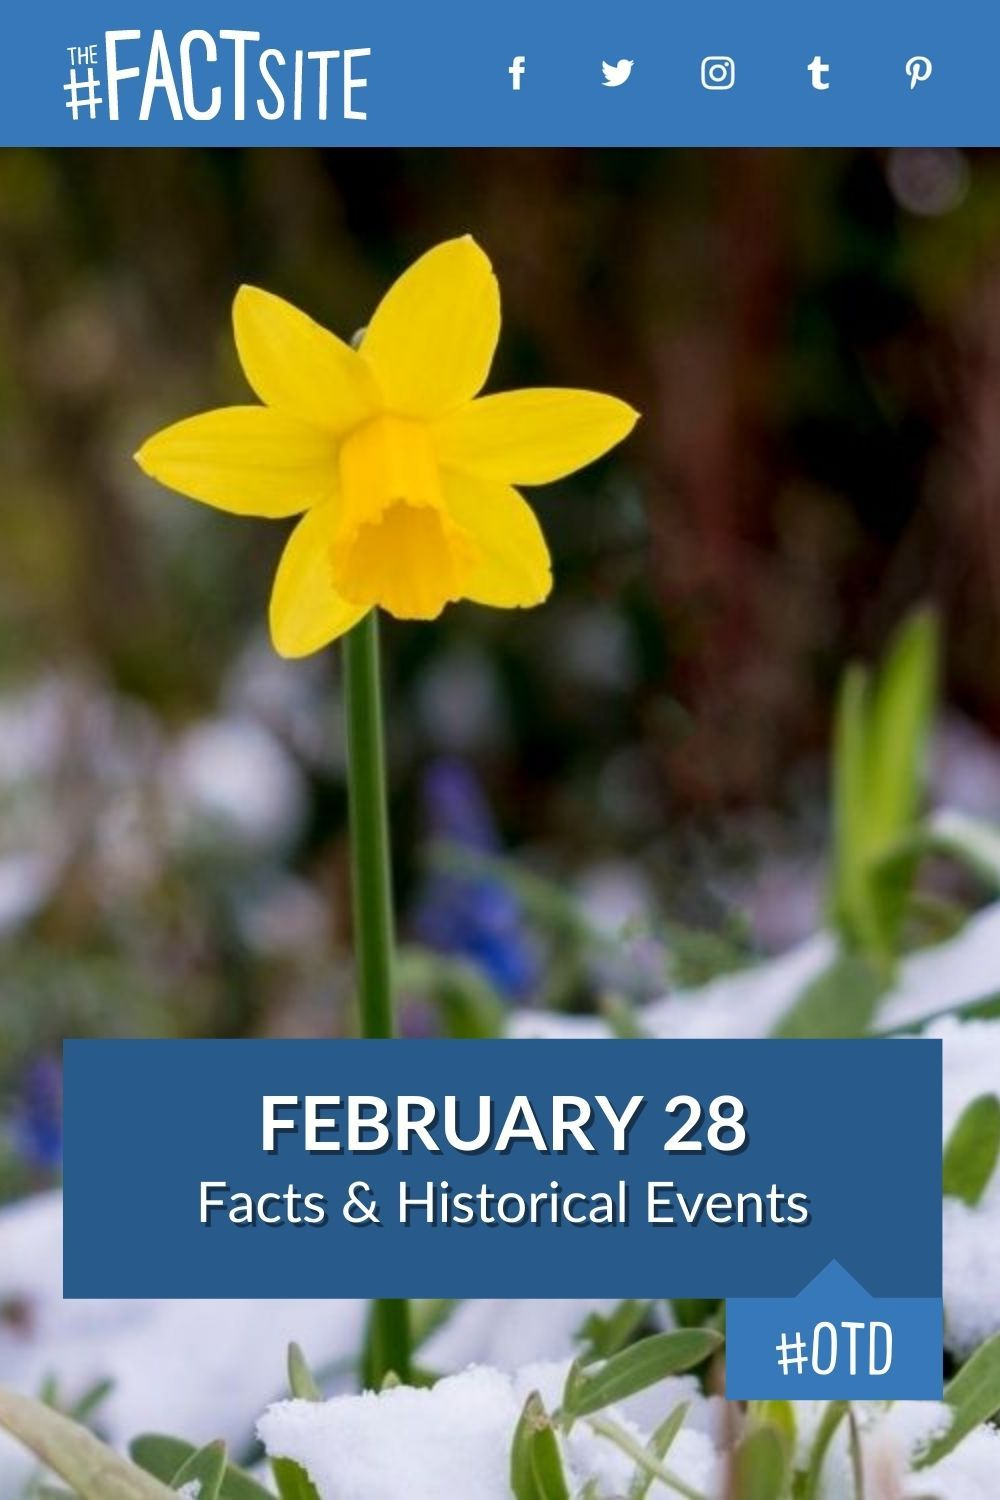 Facts & Historic Events That Happened on February 28